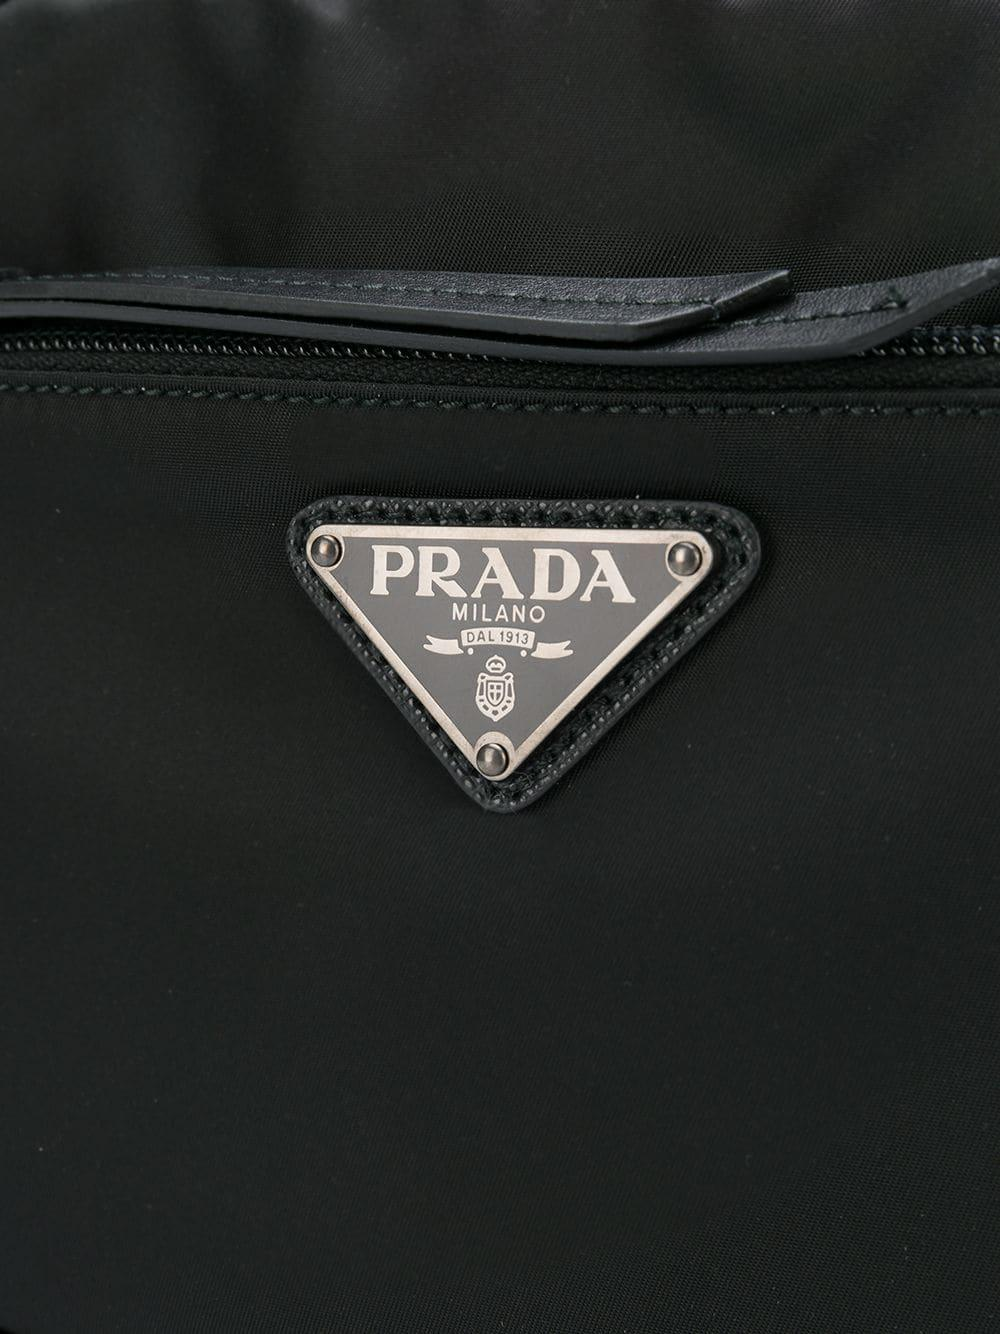 fd6e4c4e9799 Prada - Black Vela Camera Bag - Lyst. View fullscreen